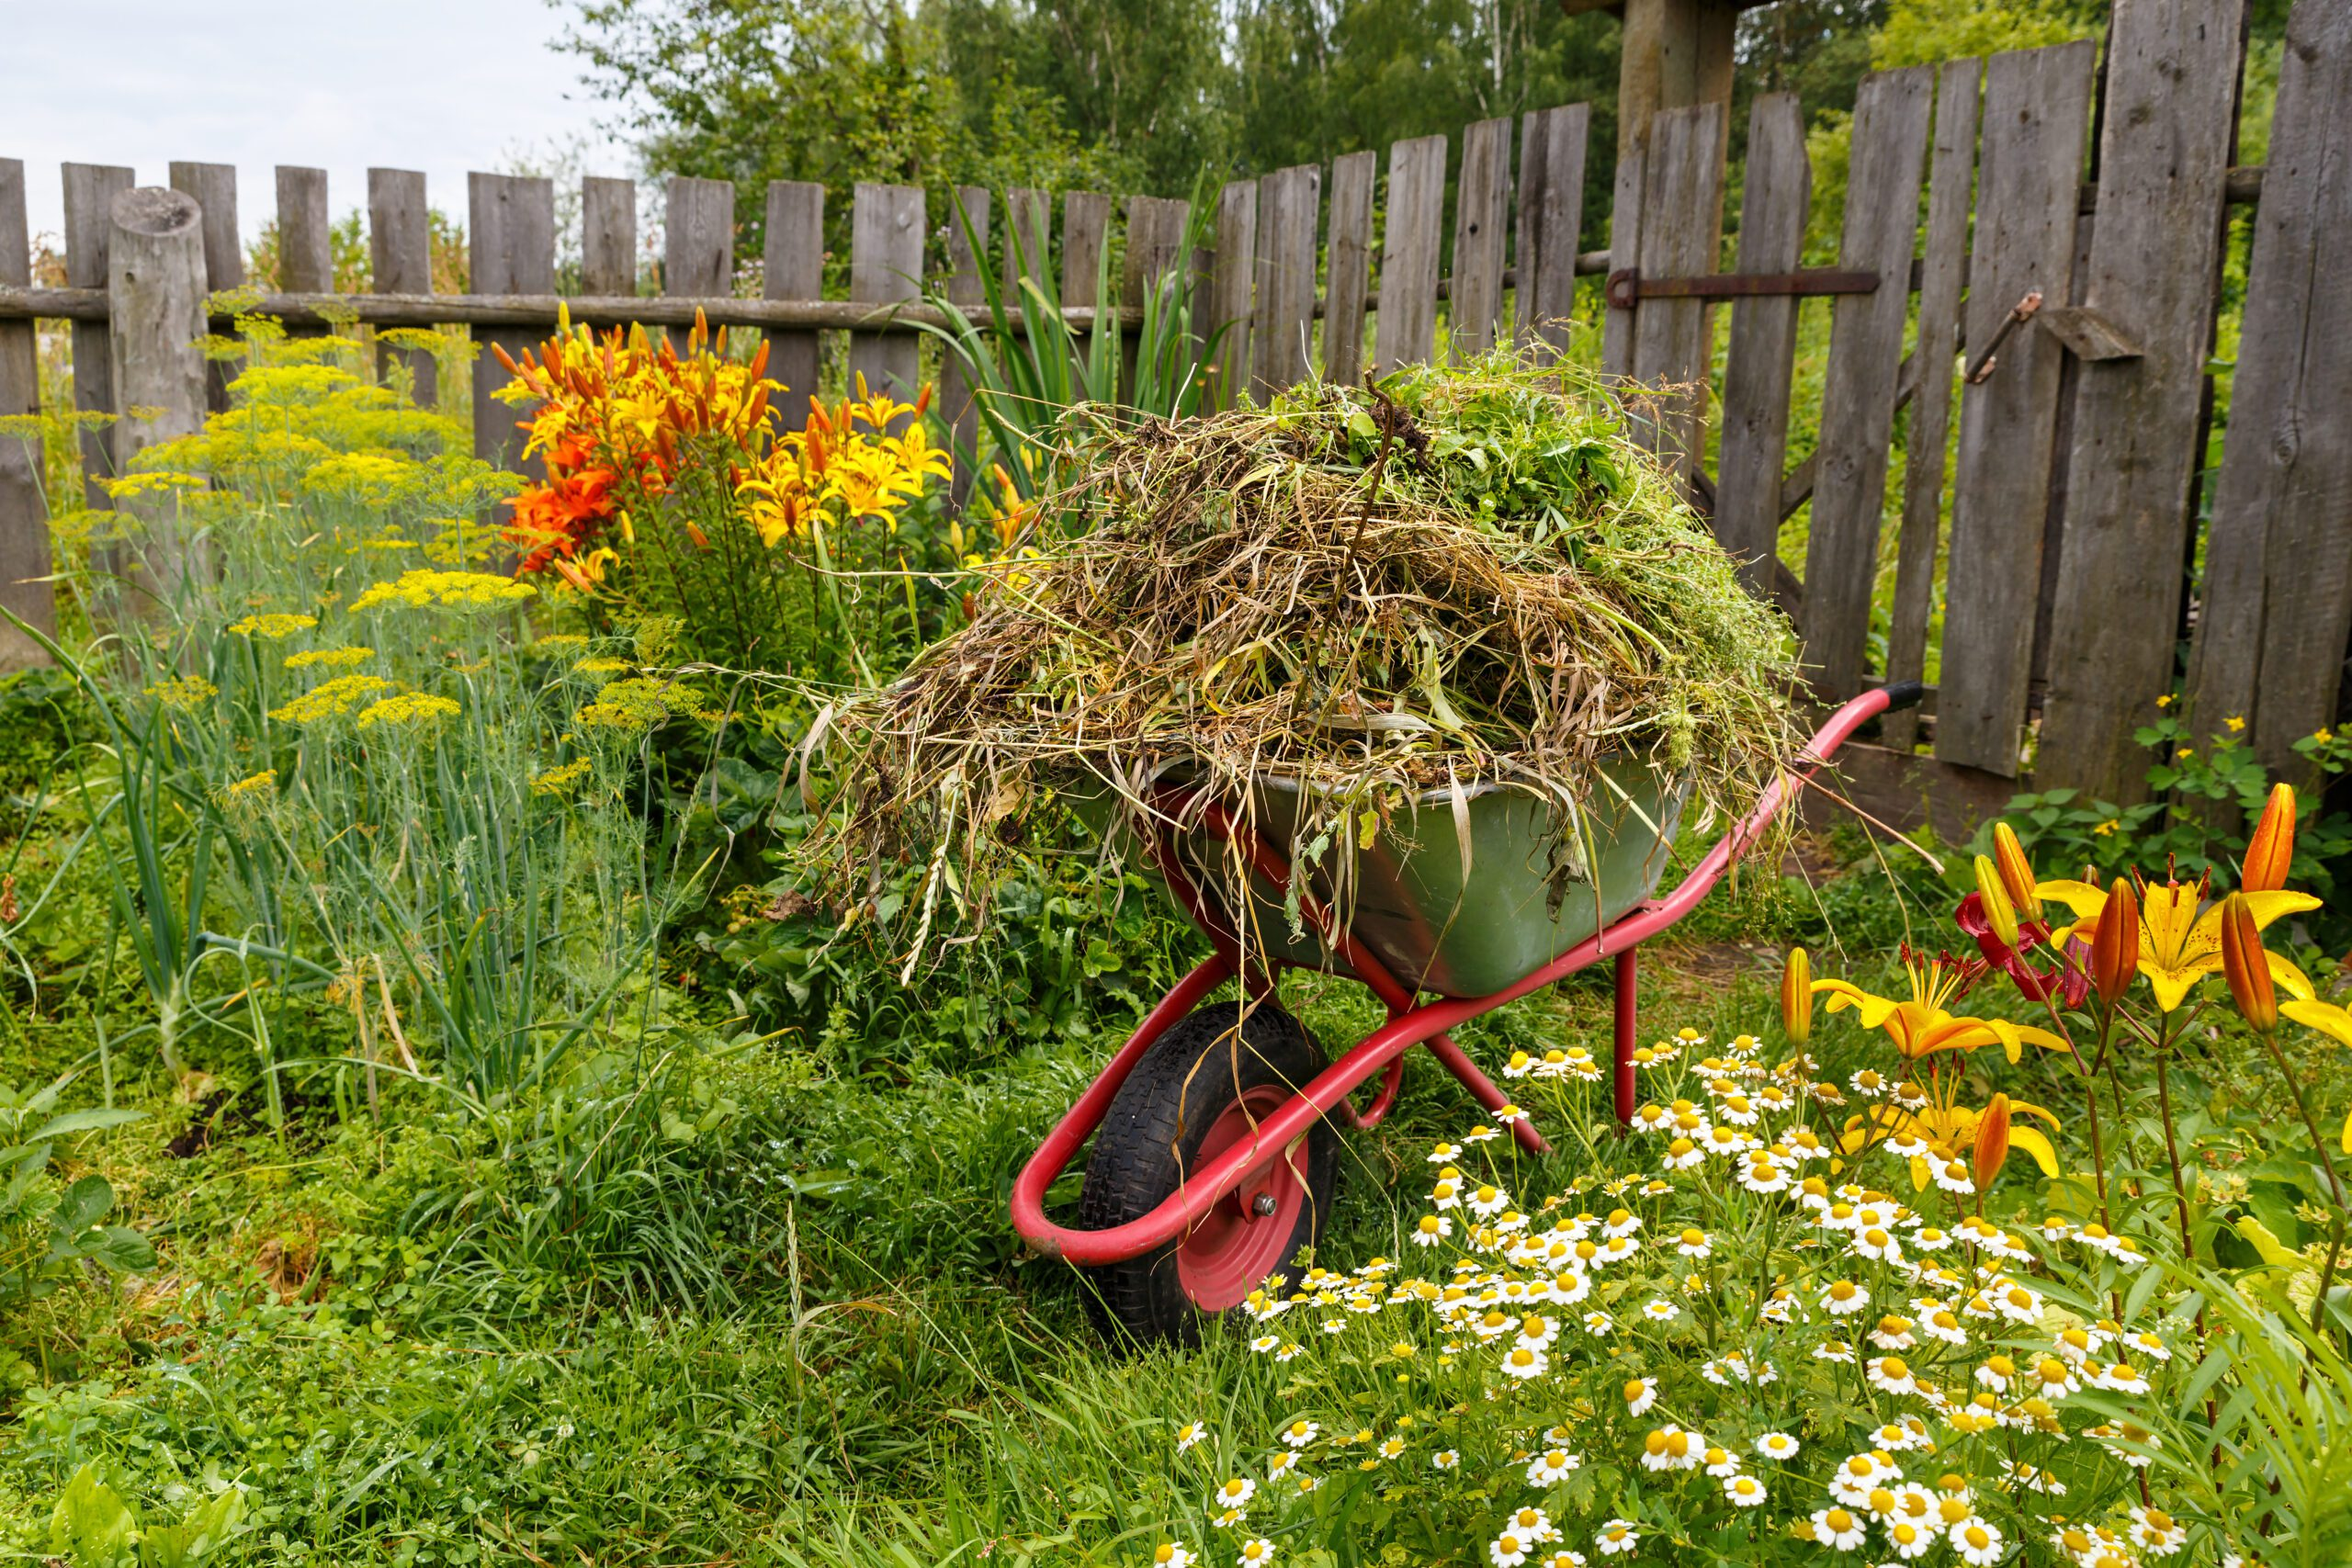 What You Need To Know About Yard Waste Disposal